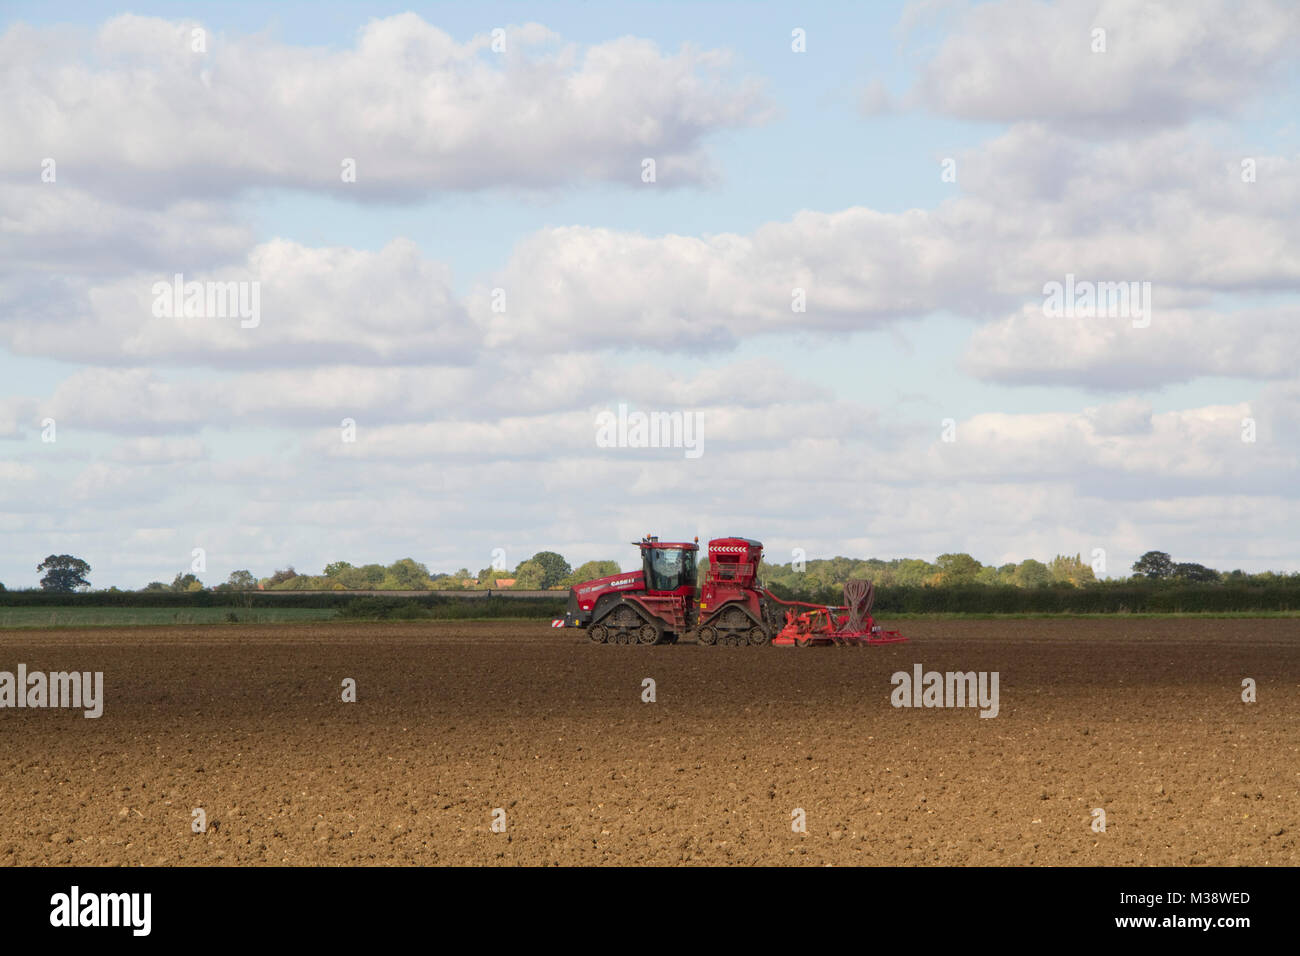 Red tracked farm vehicle doing something in a field - Stock Image